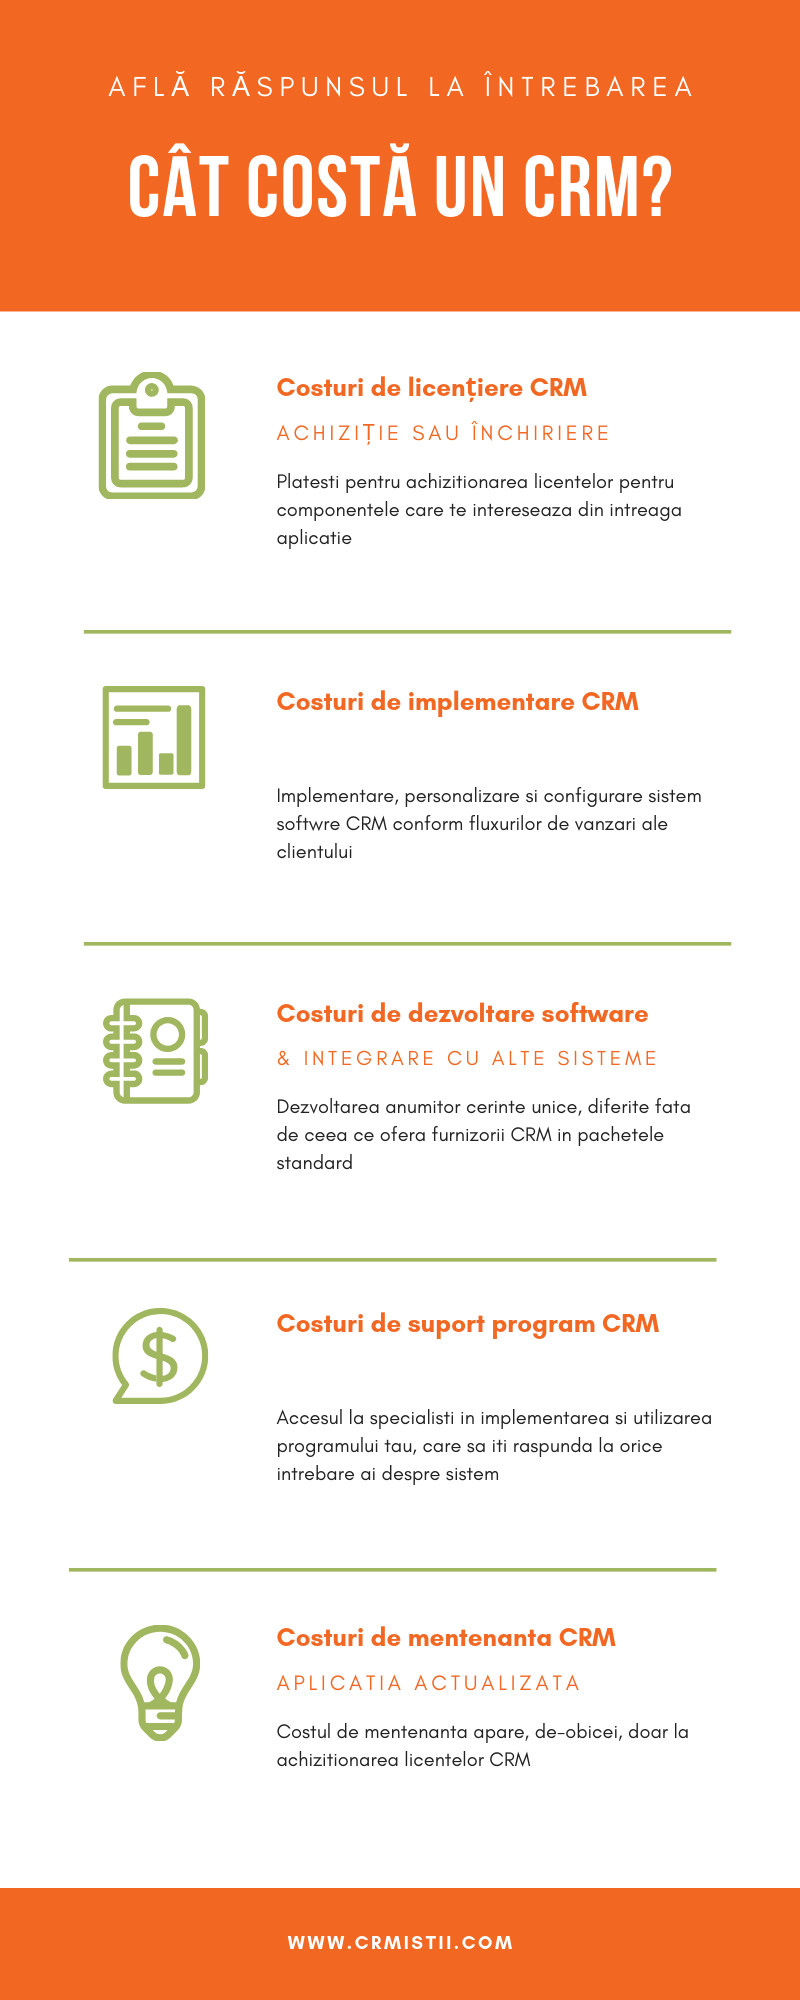 Cat costa sistem CRM - model de preturi